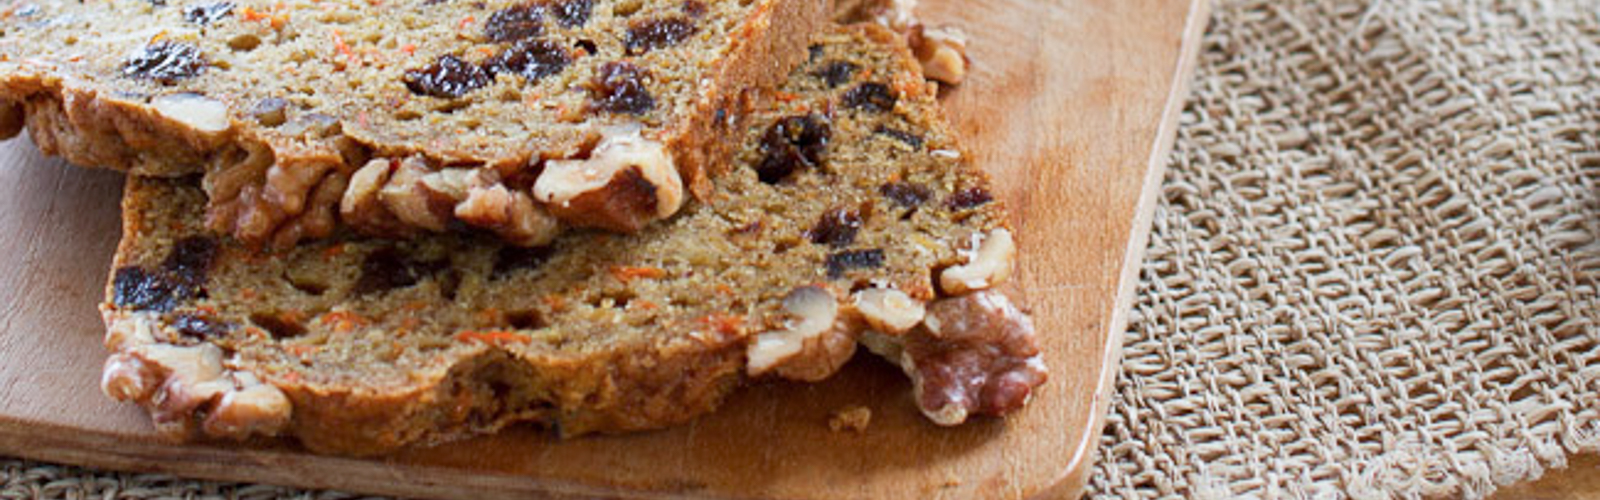 <p>Full of Diced Dried Plums, shredded apples, and grated carrots, this wholesome quickbread doesn't need a lot of extra sugar. The weight and volume of the carrots and apples are based on produce that has been peeled and grated. For this recipe, start with 240 grams whole carrots (about 2 large carrots) and 240 grams […]</p>